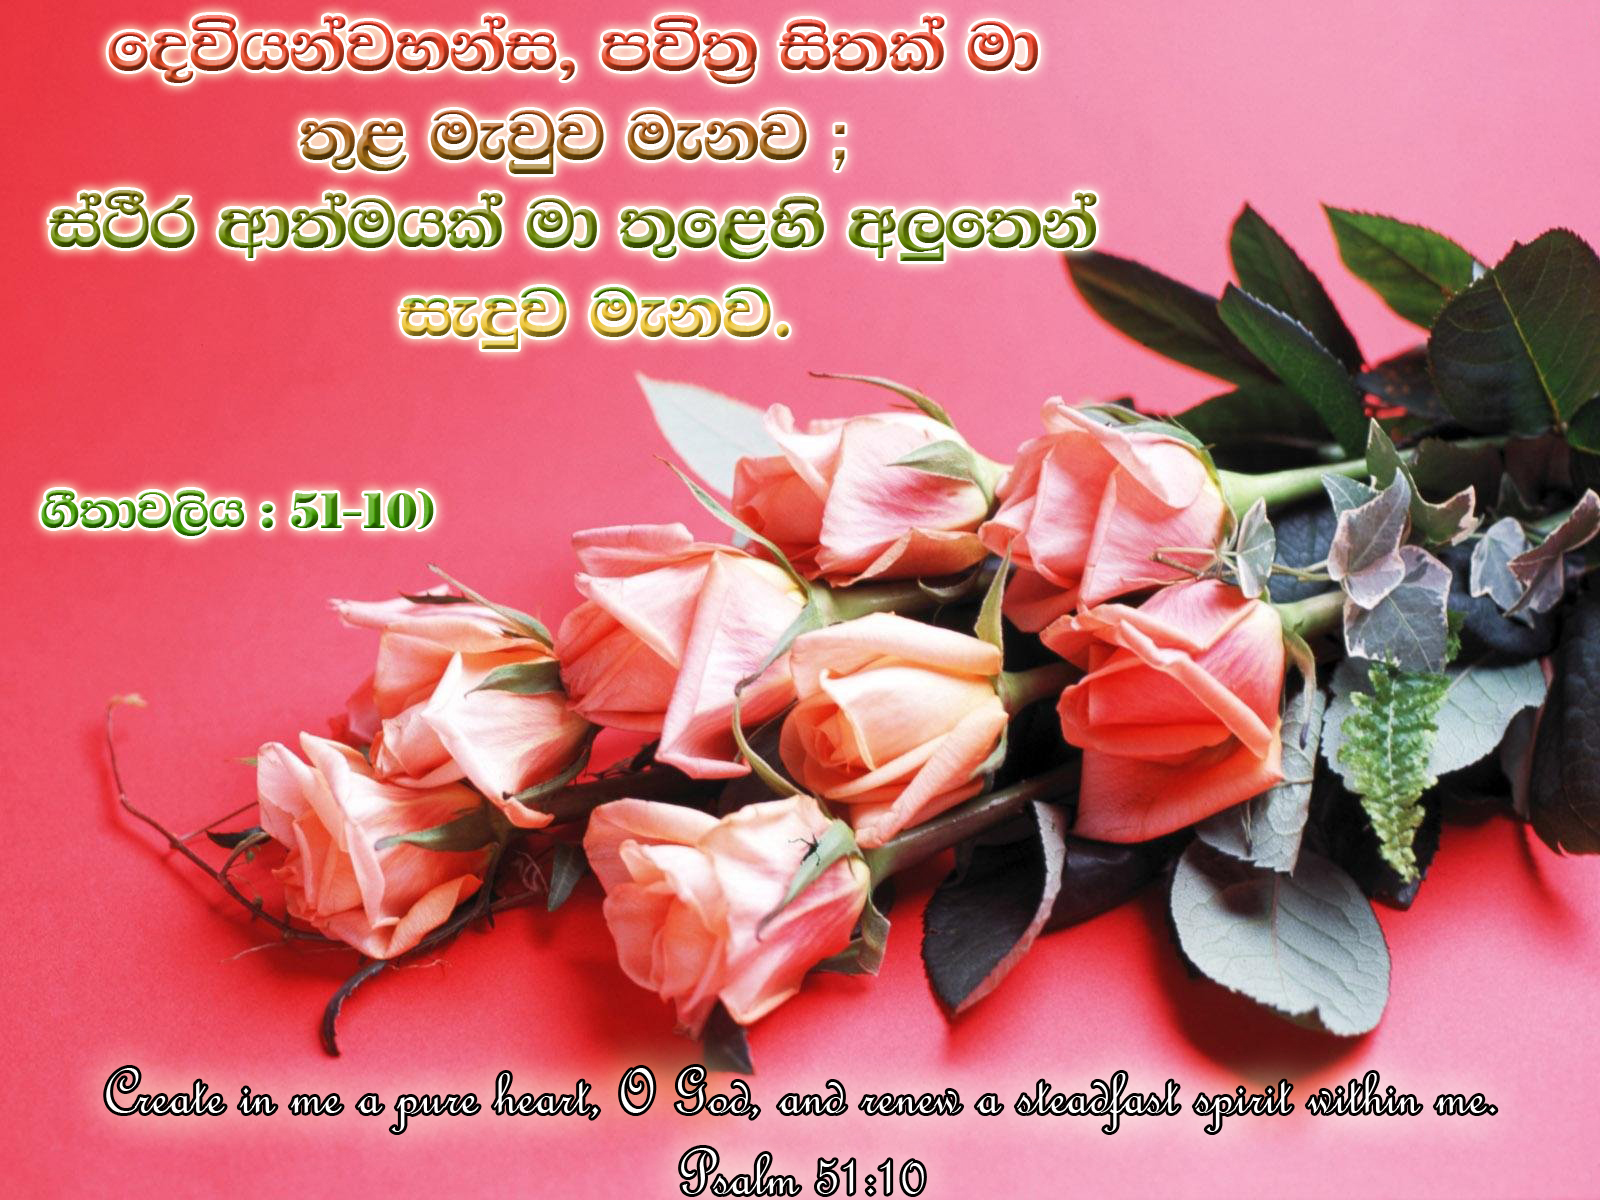 Fall Out 4 Hd Wallpapers Download Sinhala Bible Words Wallpaper Gallery